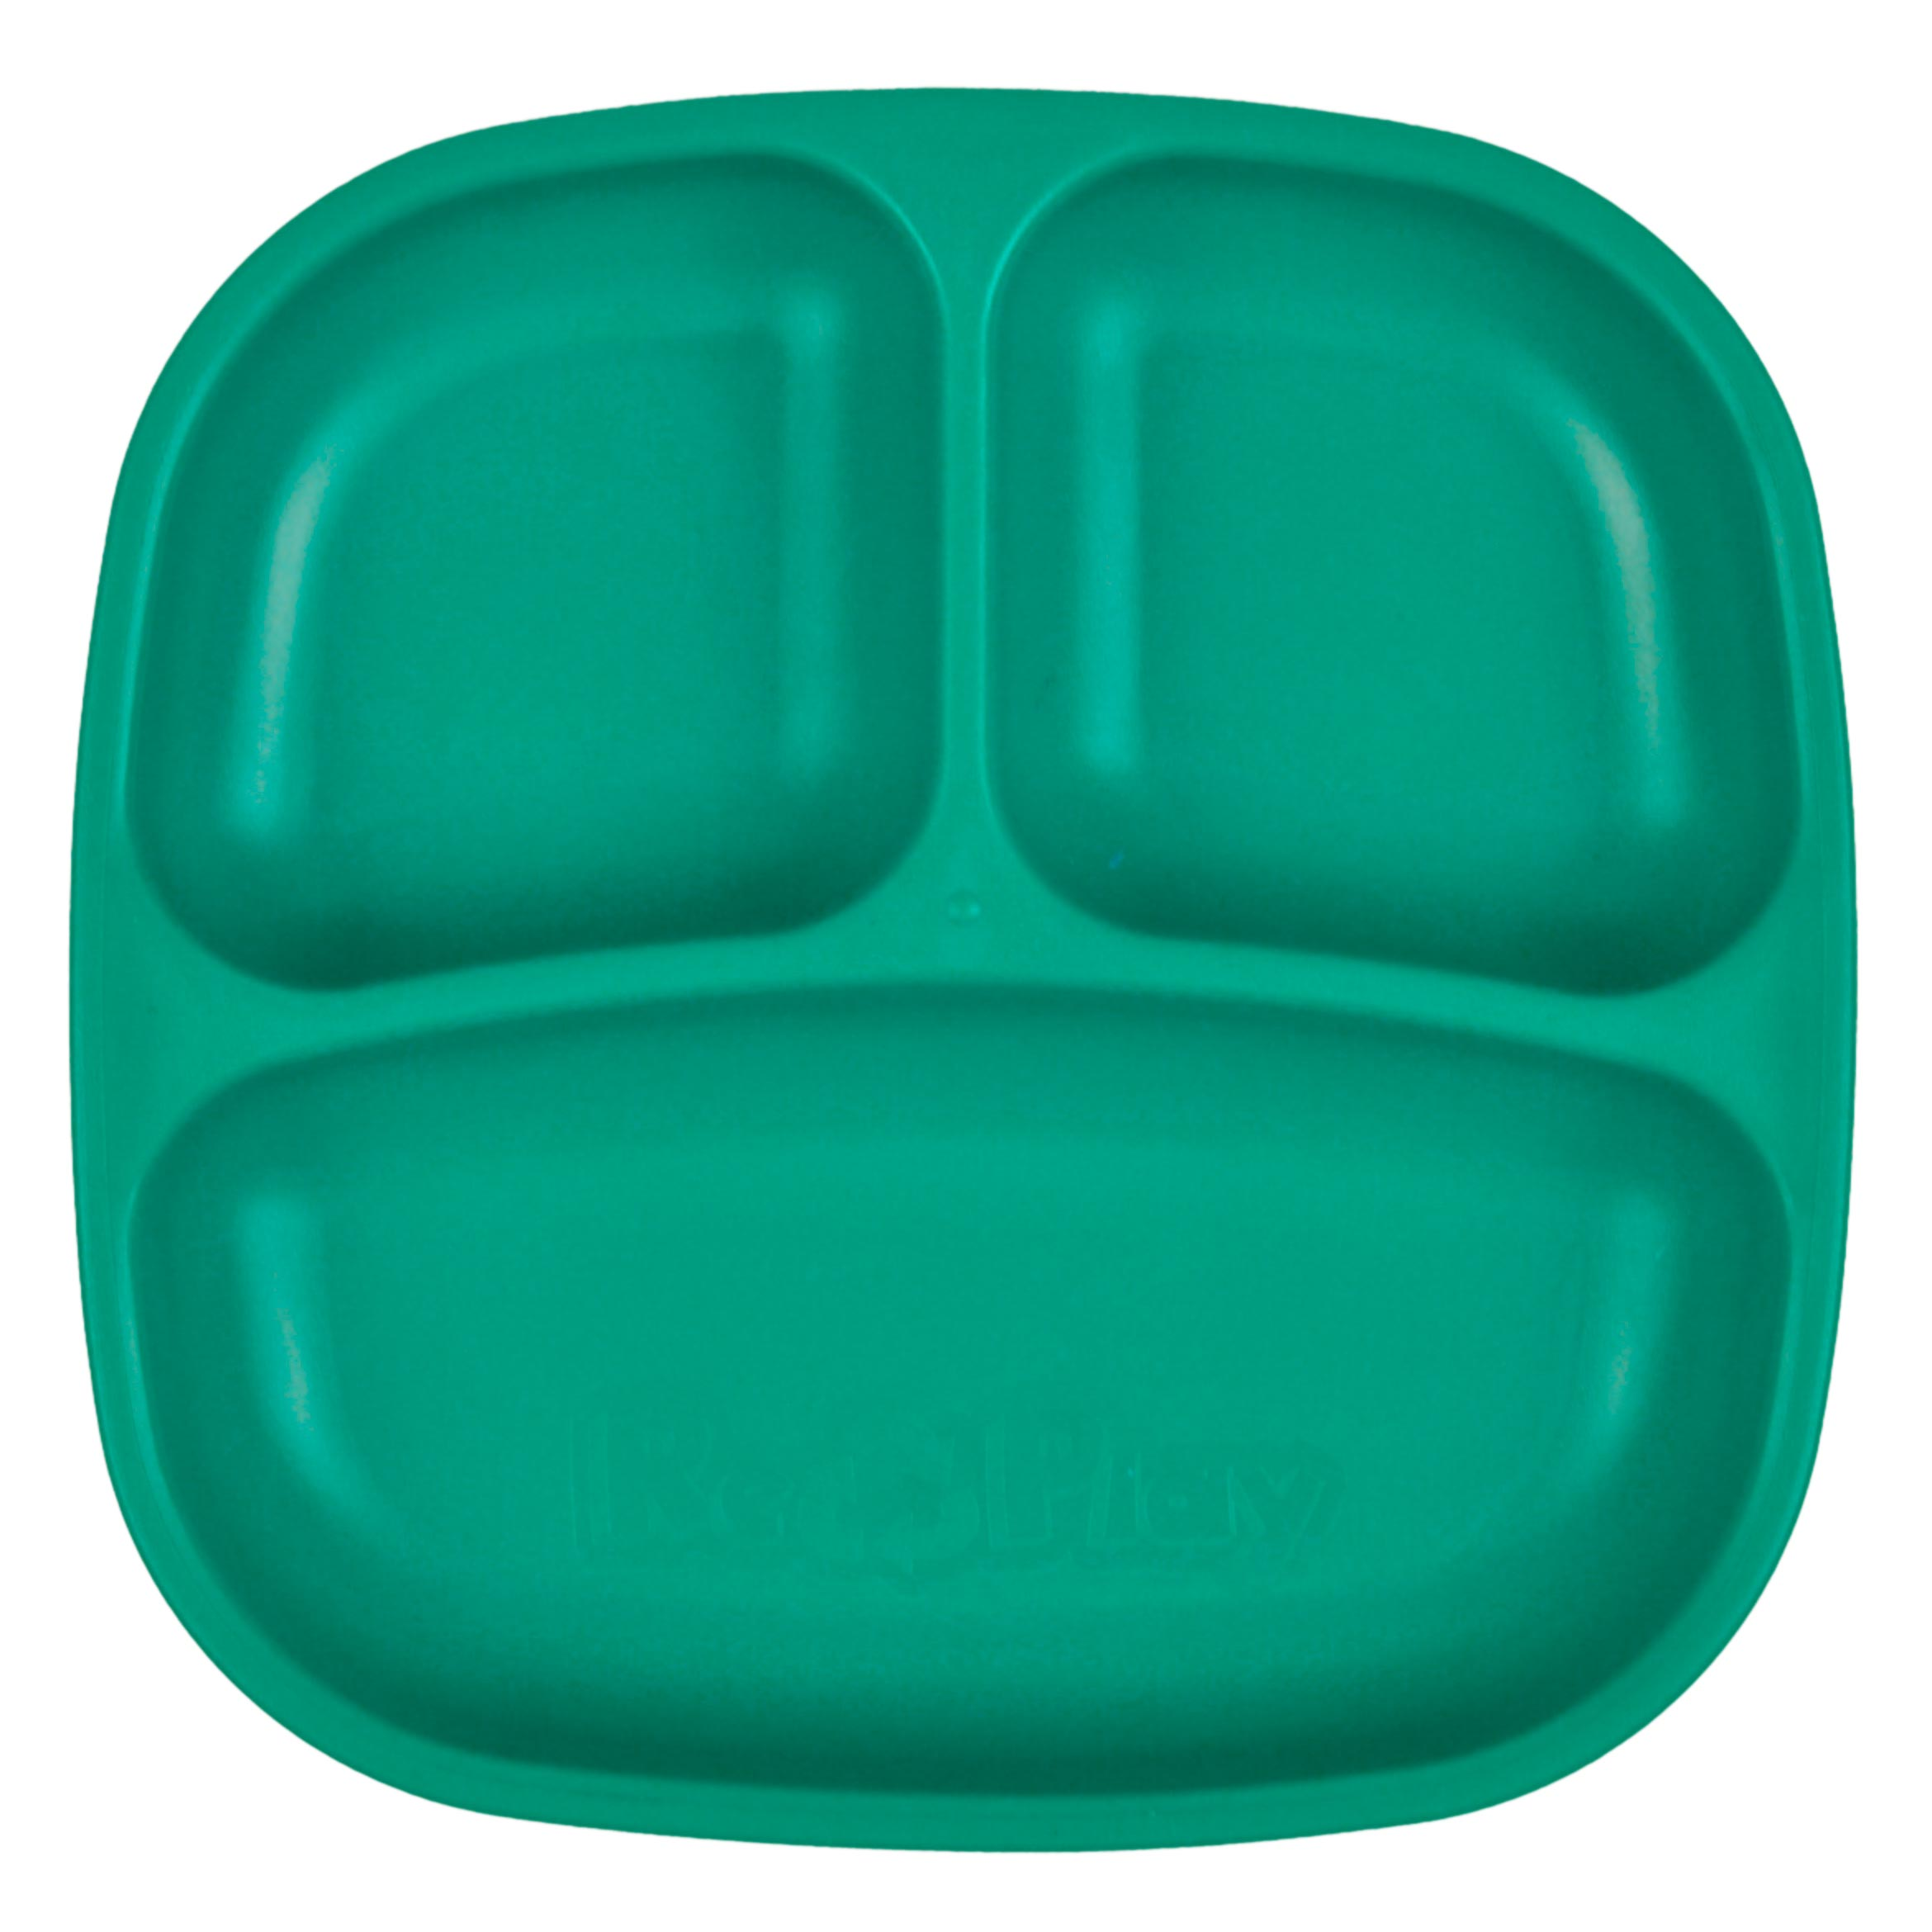 "Re-Play 7"" Divided Plate - Teal"